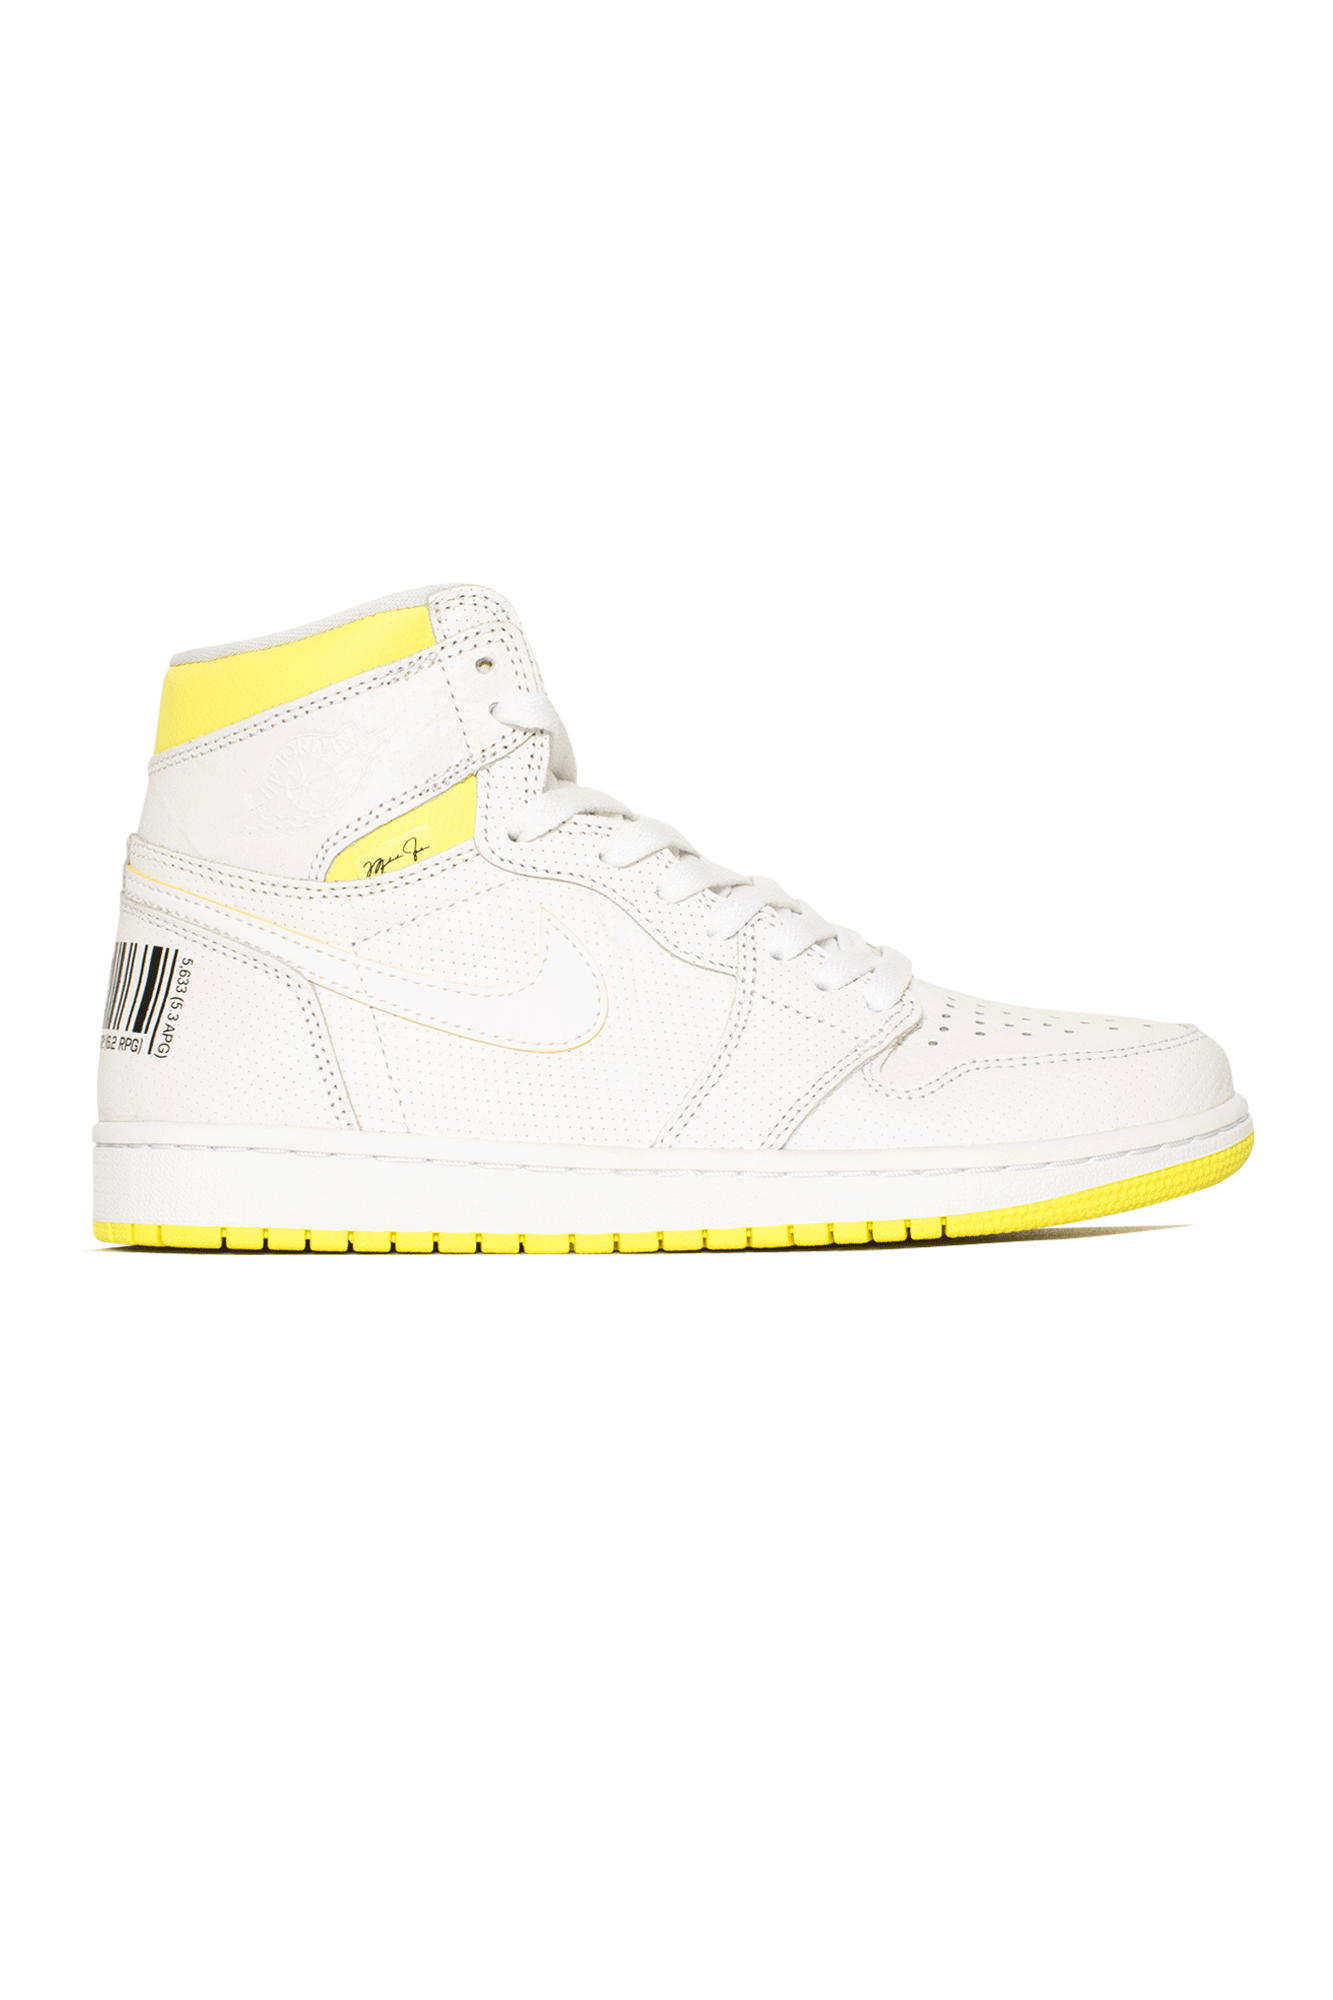 "Air Jordan Sneakers 1 Retro High OG ""First Class Flight"" White 555088#000#170#7 - One Block Down"